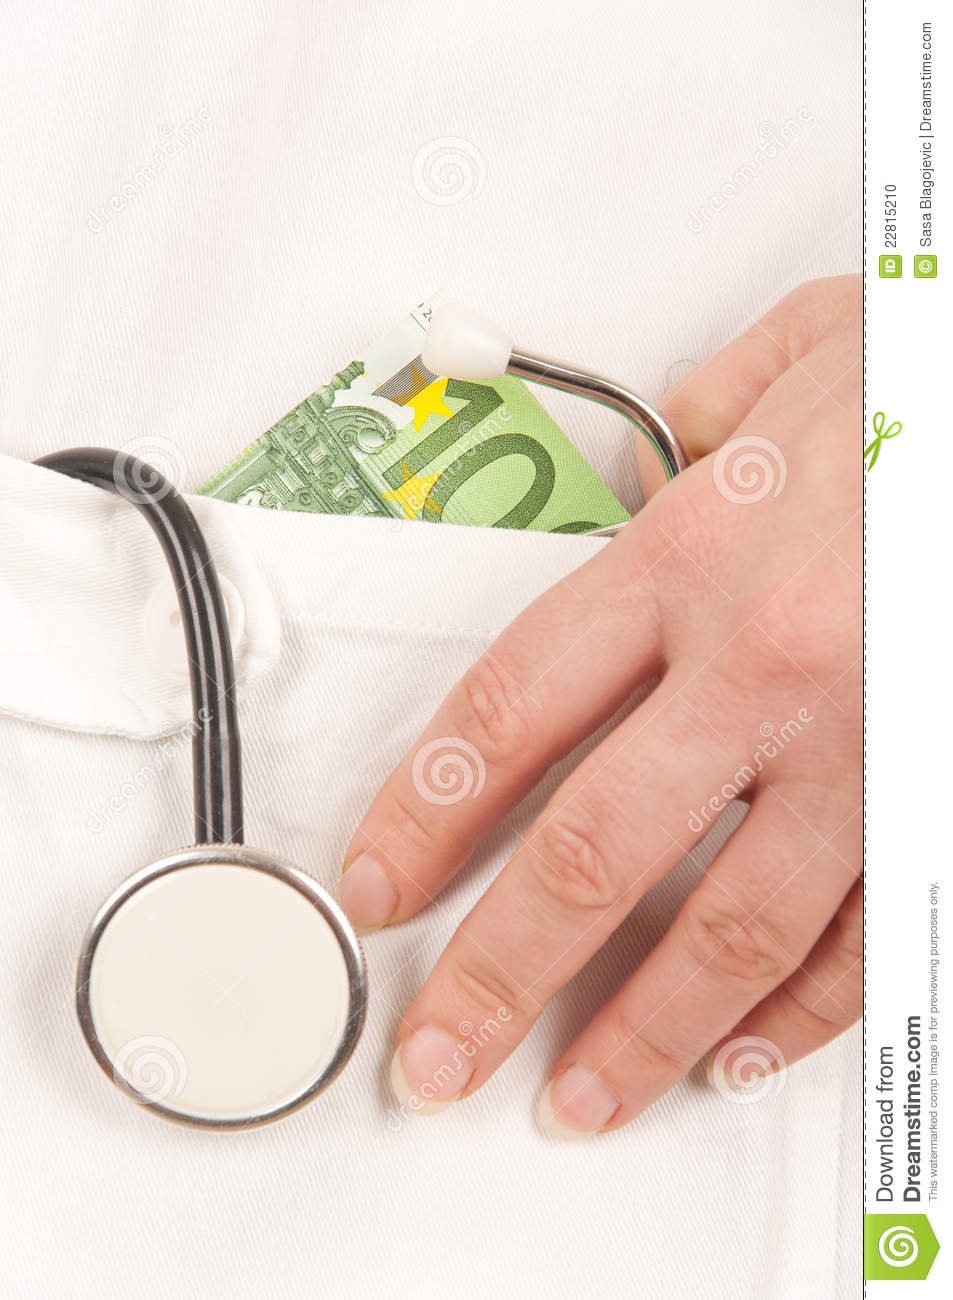 bribery in health care Mimedx has been embroiled in a separate controversy involving payments to health care professionals under the federal physician payments sunshine act, companies that make drugs,.